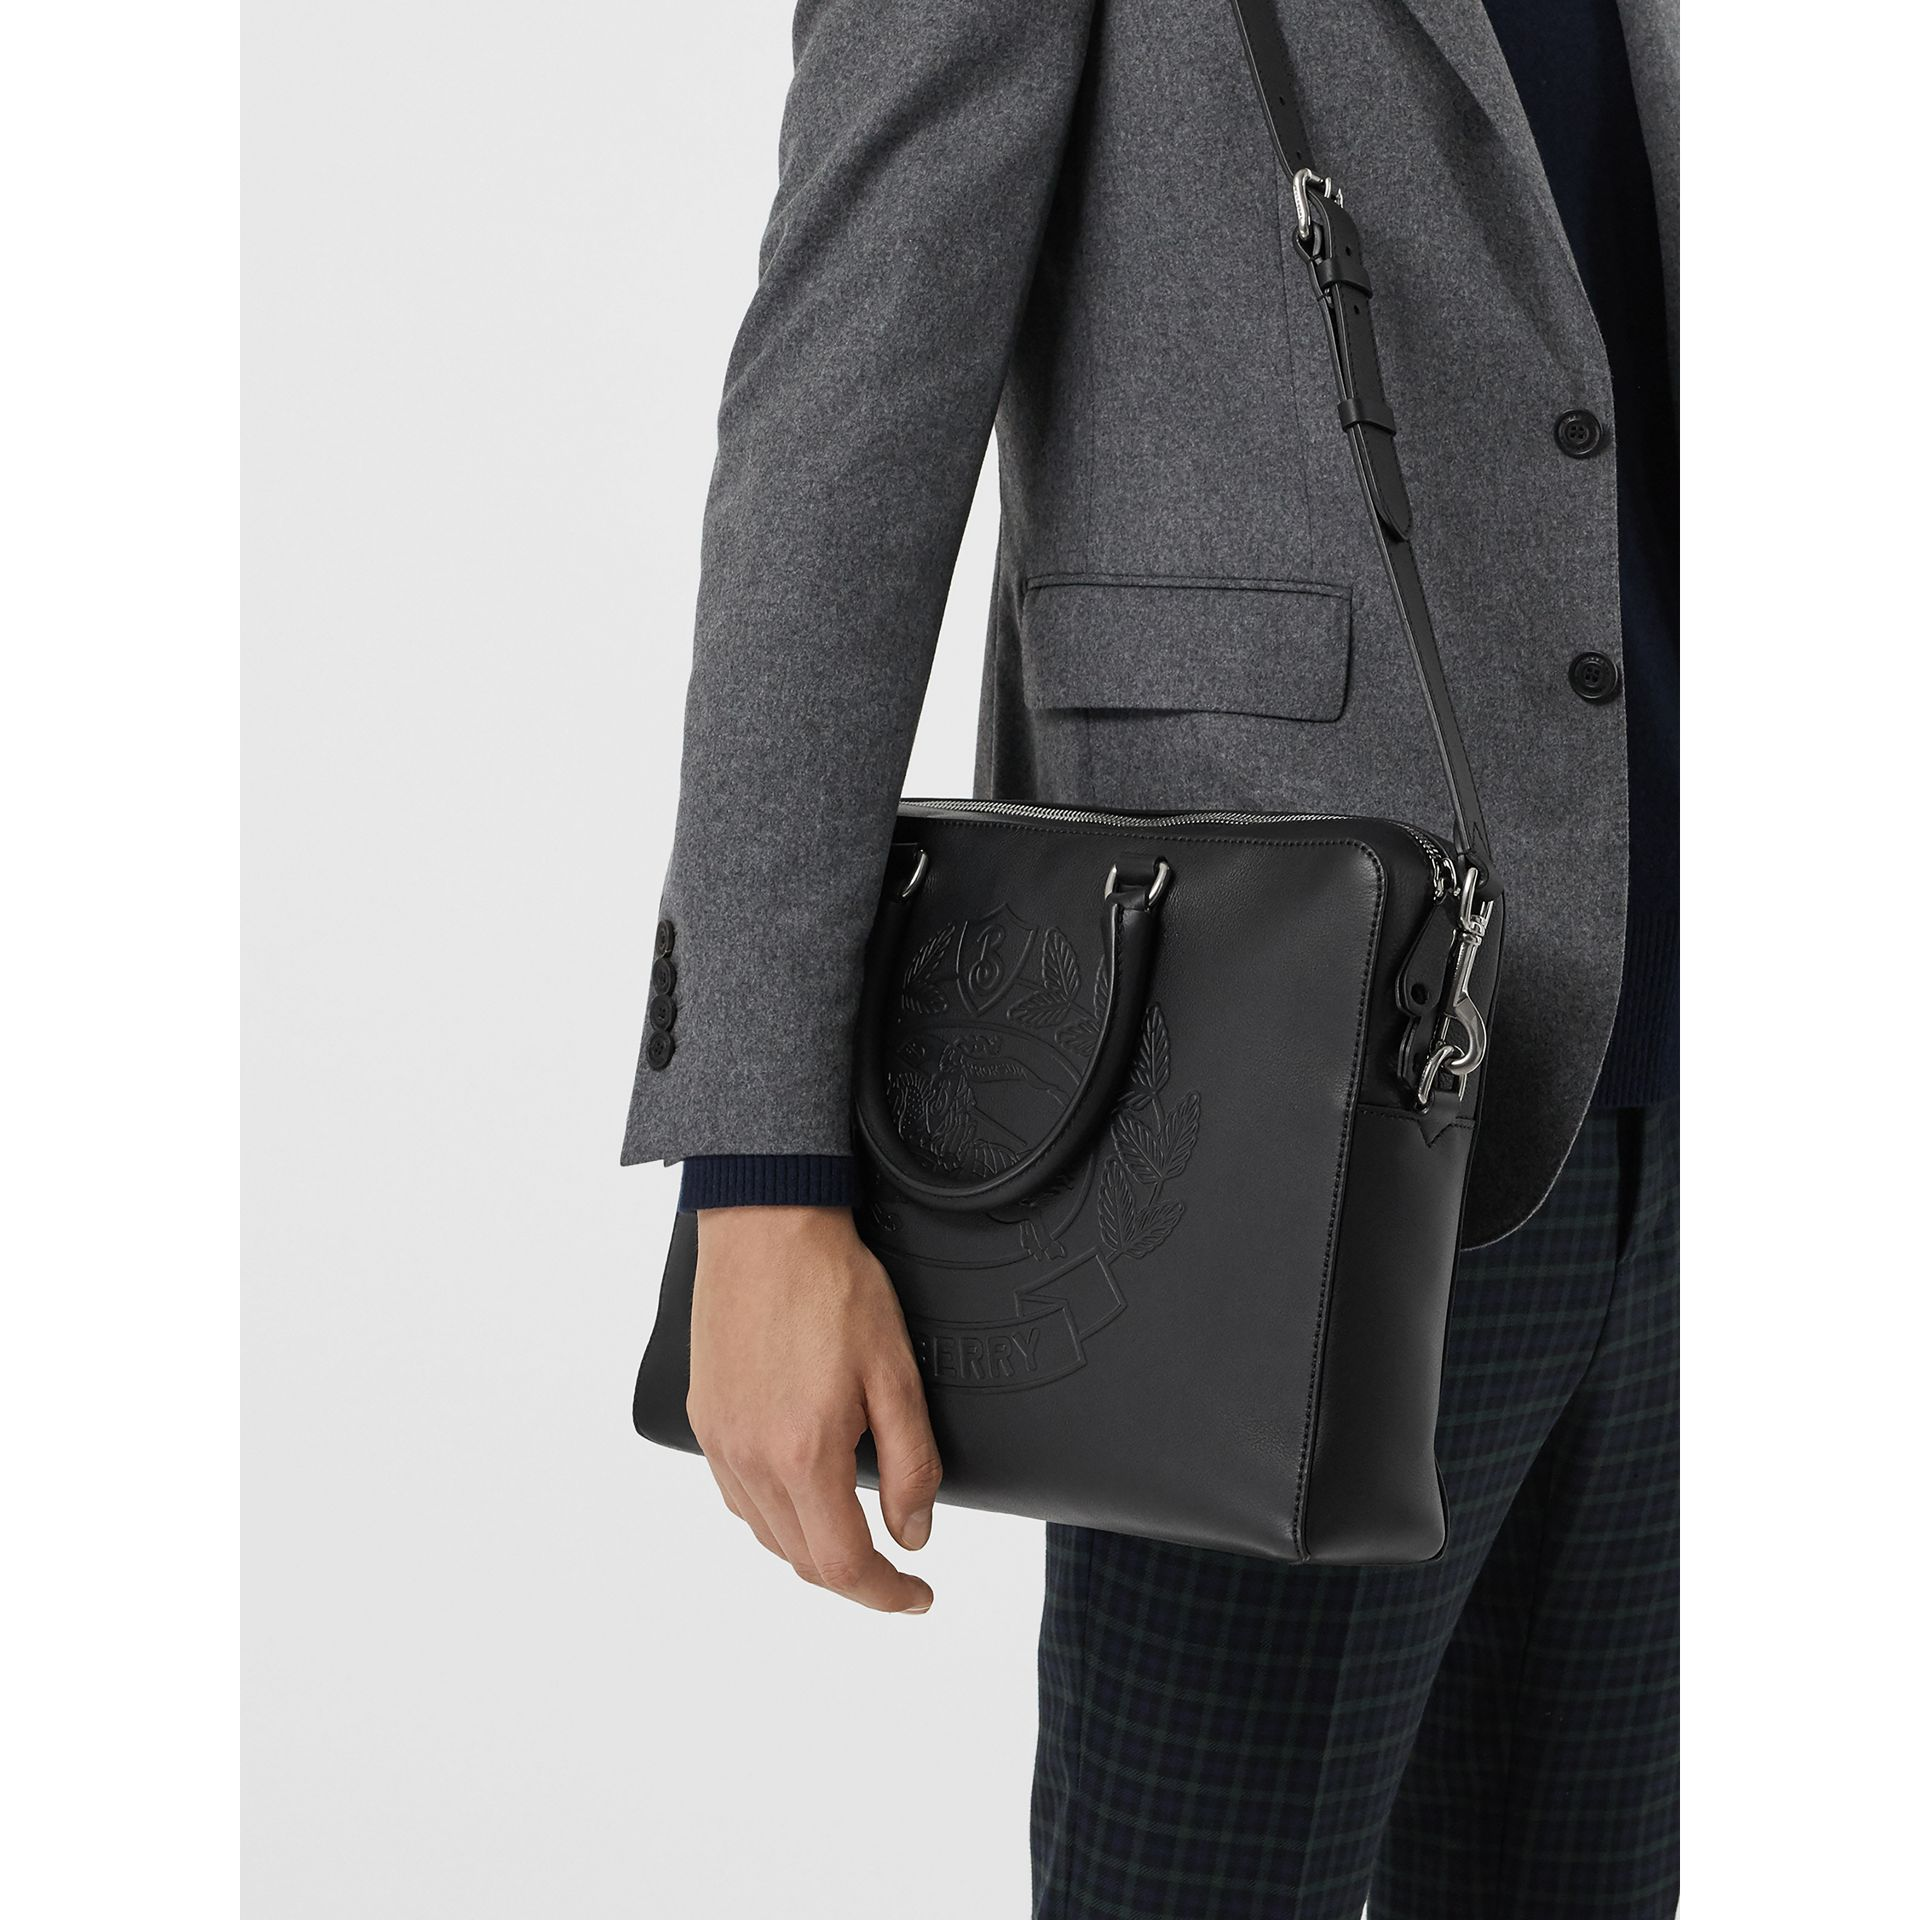 Embossed Crest Leather Briefcase in Black - Men | Burberry - gallery image 3